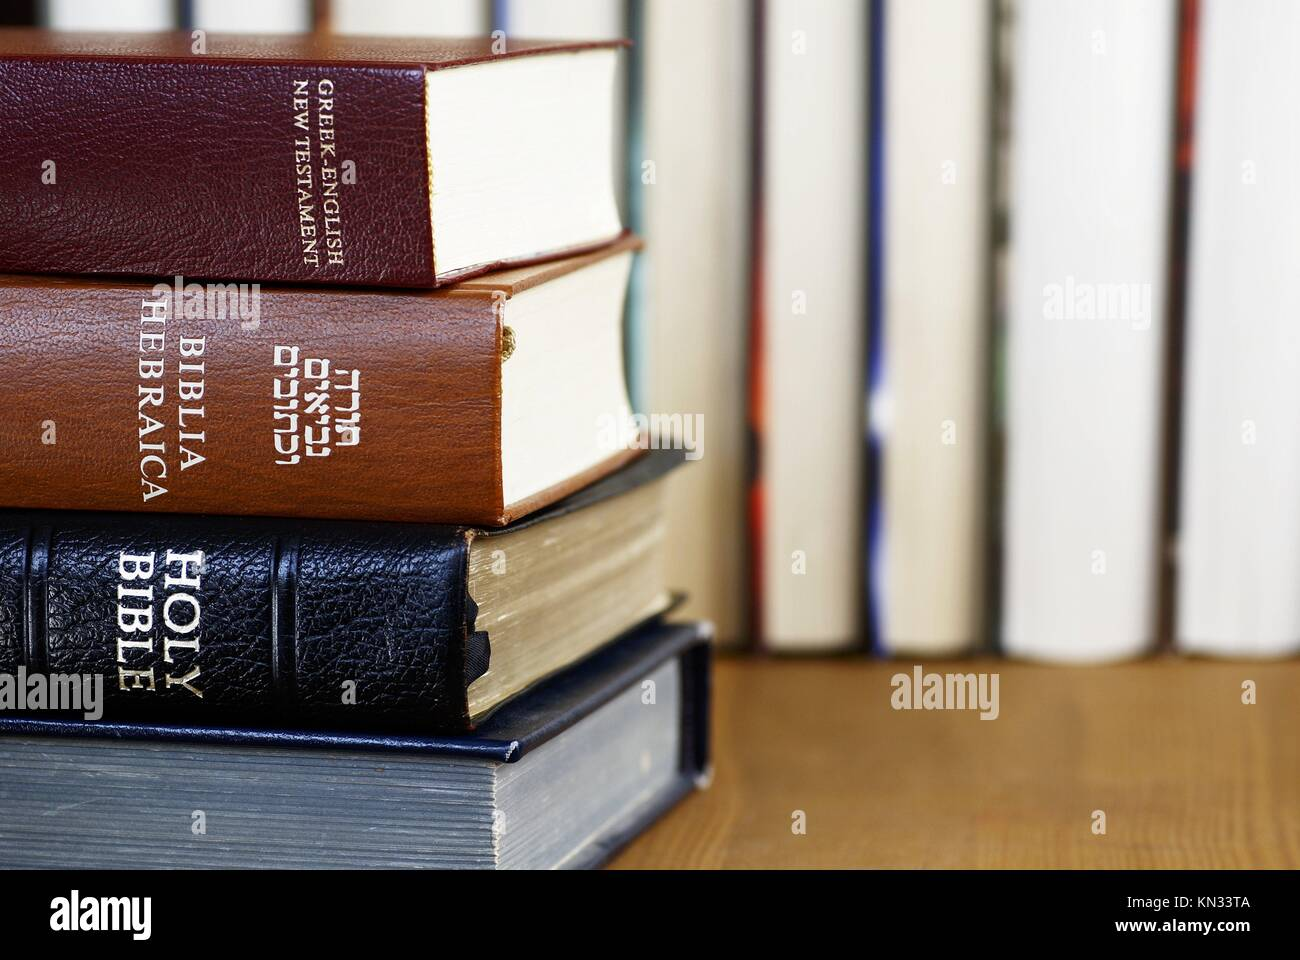 Holy Bible in different languages - english, hebrew and greek. - Stock Image